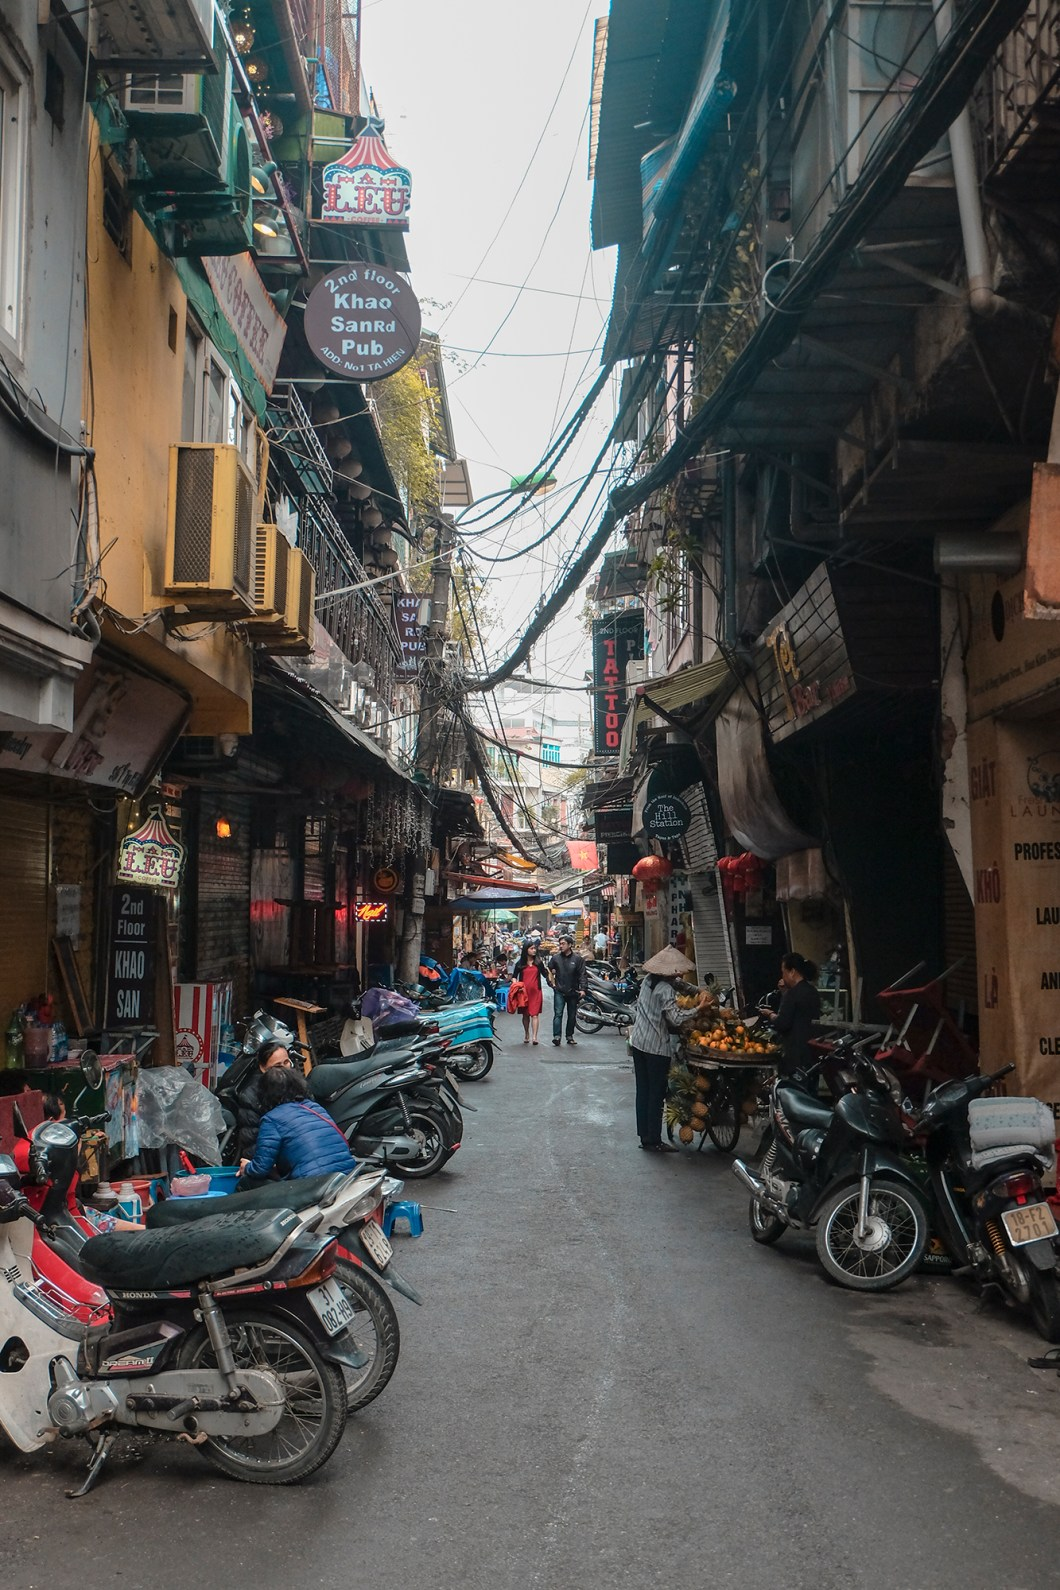 Hanoi Vietnam | How Far From Home